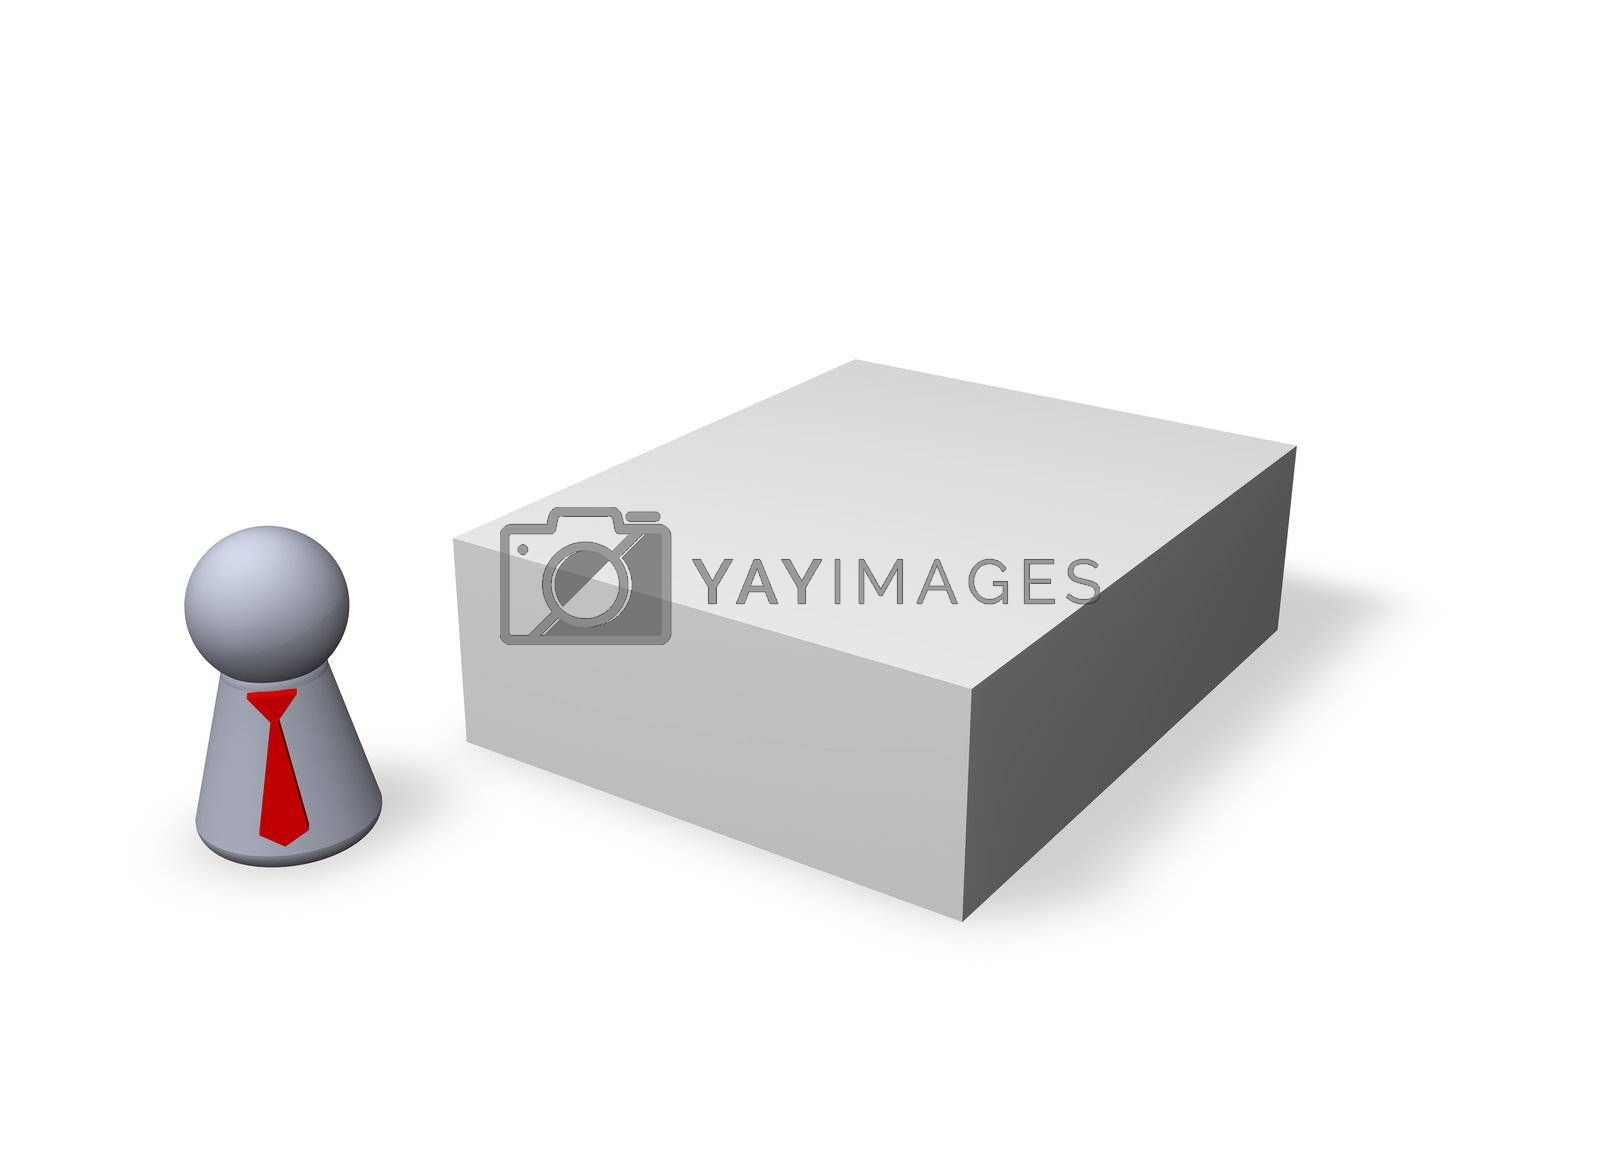 play figure with red tie and blank packing